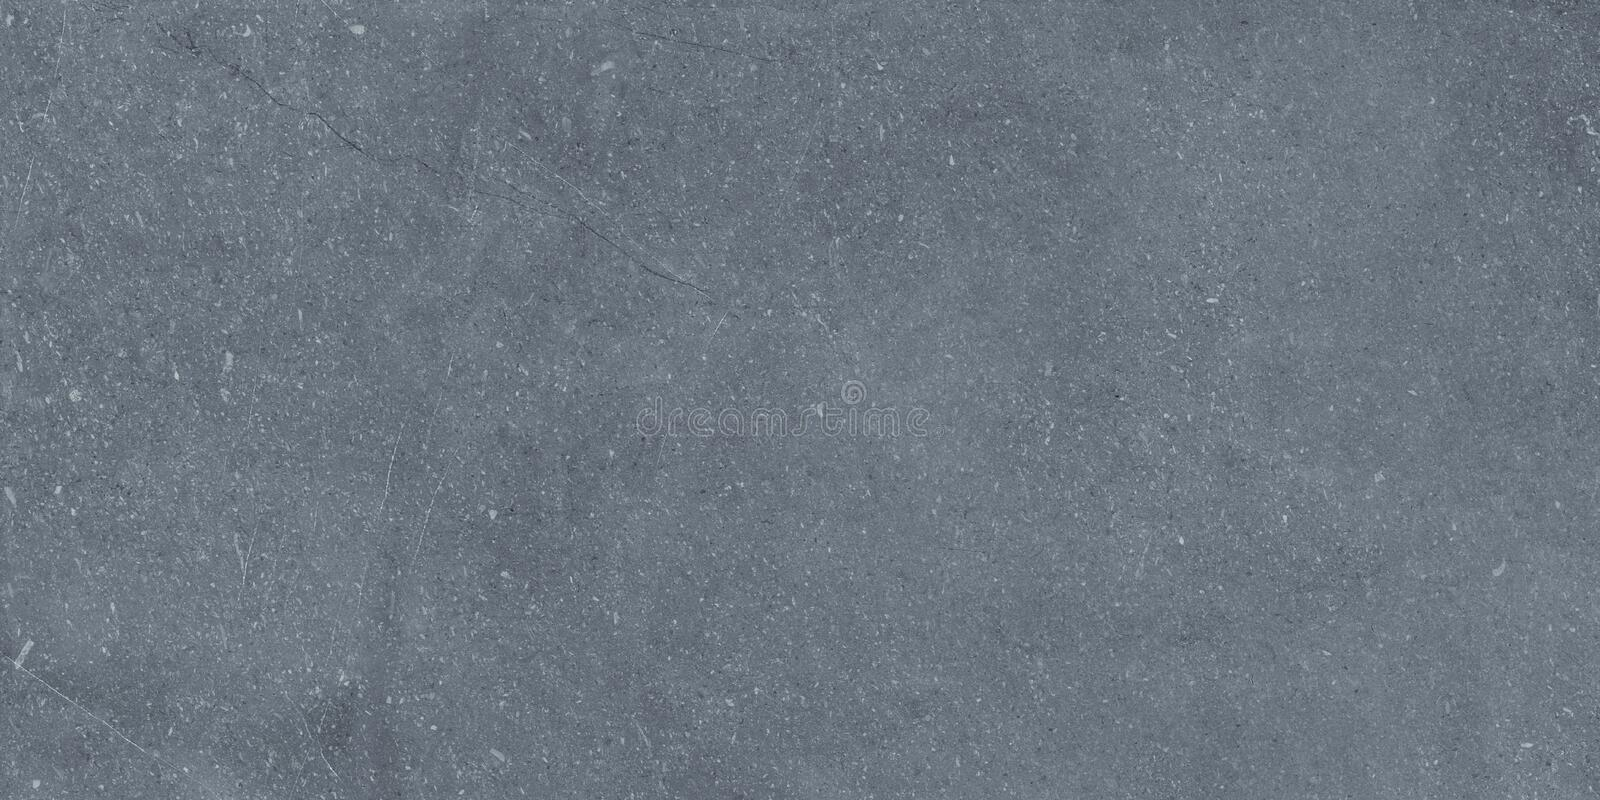 Grey marble texture in natural pattern with high resolution for background and design. Dark gray stone floor. Rustic gray granite stock photo